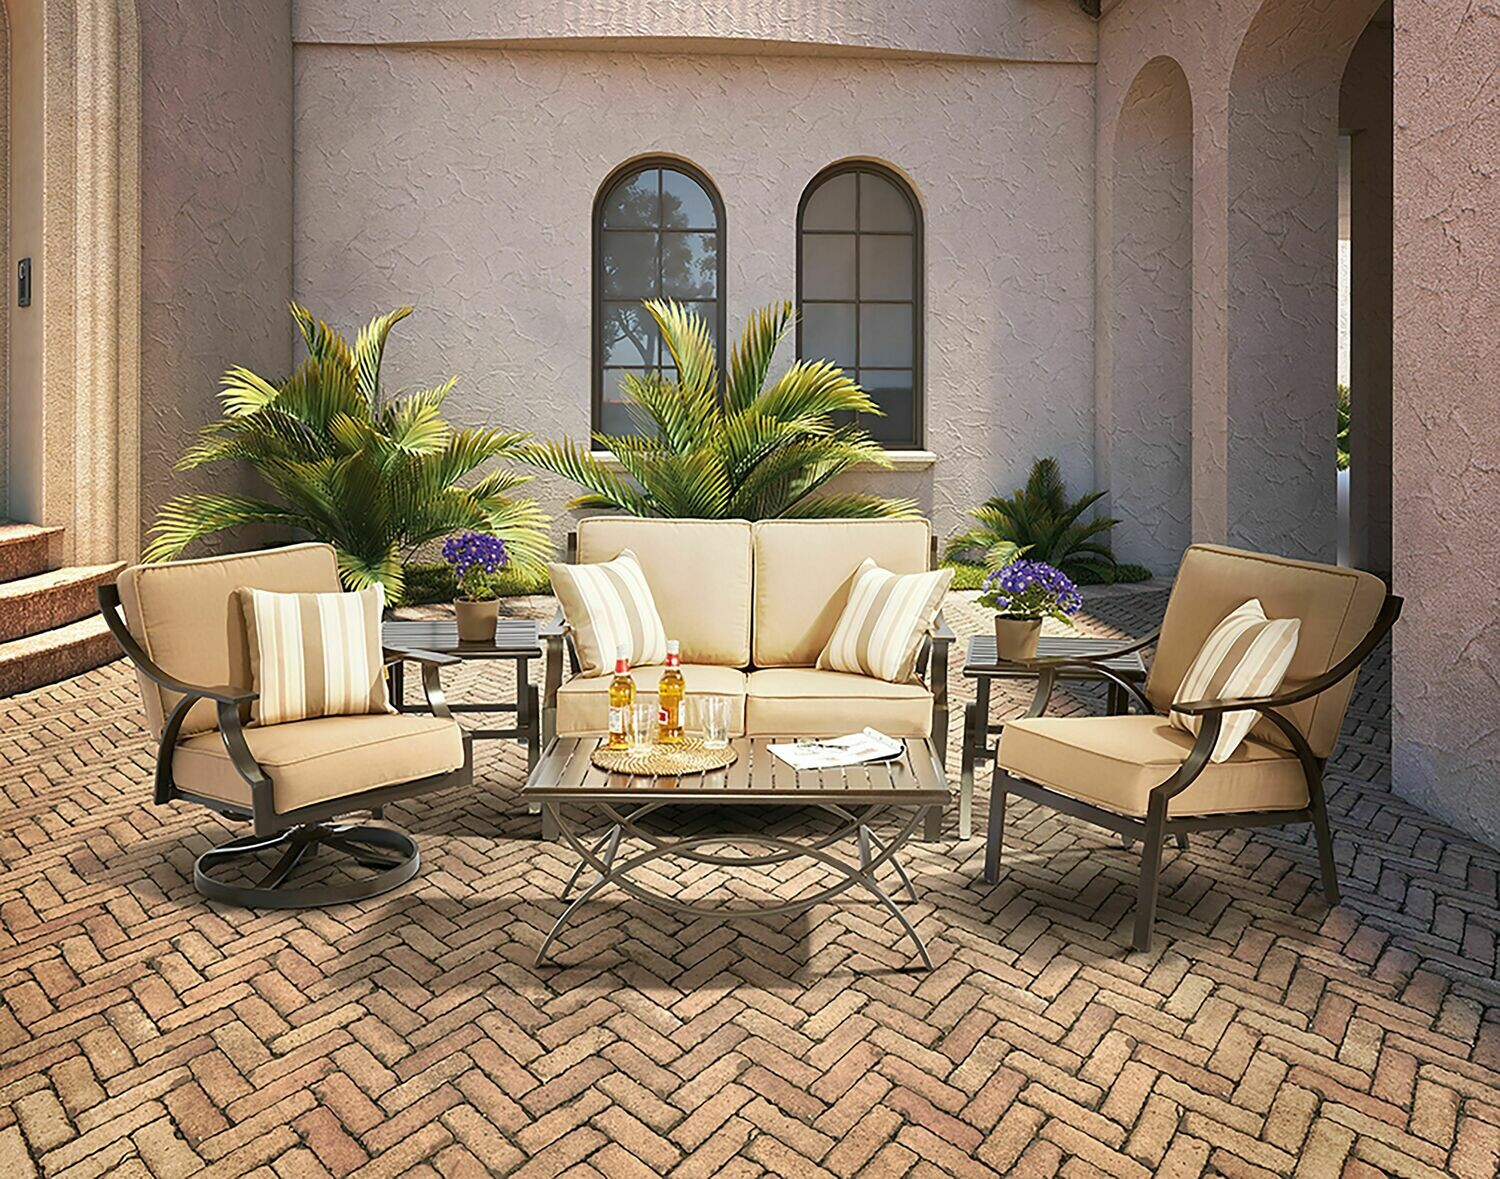 Merge Chestnut Brown 6 PC Set  (SOLD AS SET)  SET INCLUDES: (1-880078) COFFEE TABLE, (2-880079) END TABLES, (2-880102) LOUNGE CHAIRS & (1-880103) LOVESEAT  FABRIC: DUPIONE WALNUT